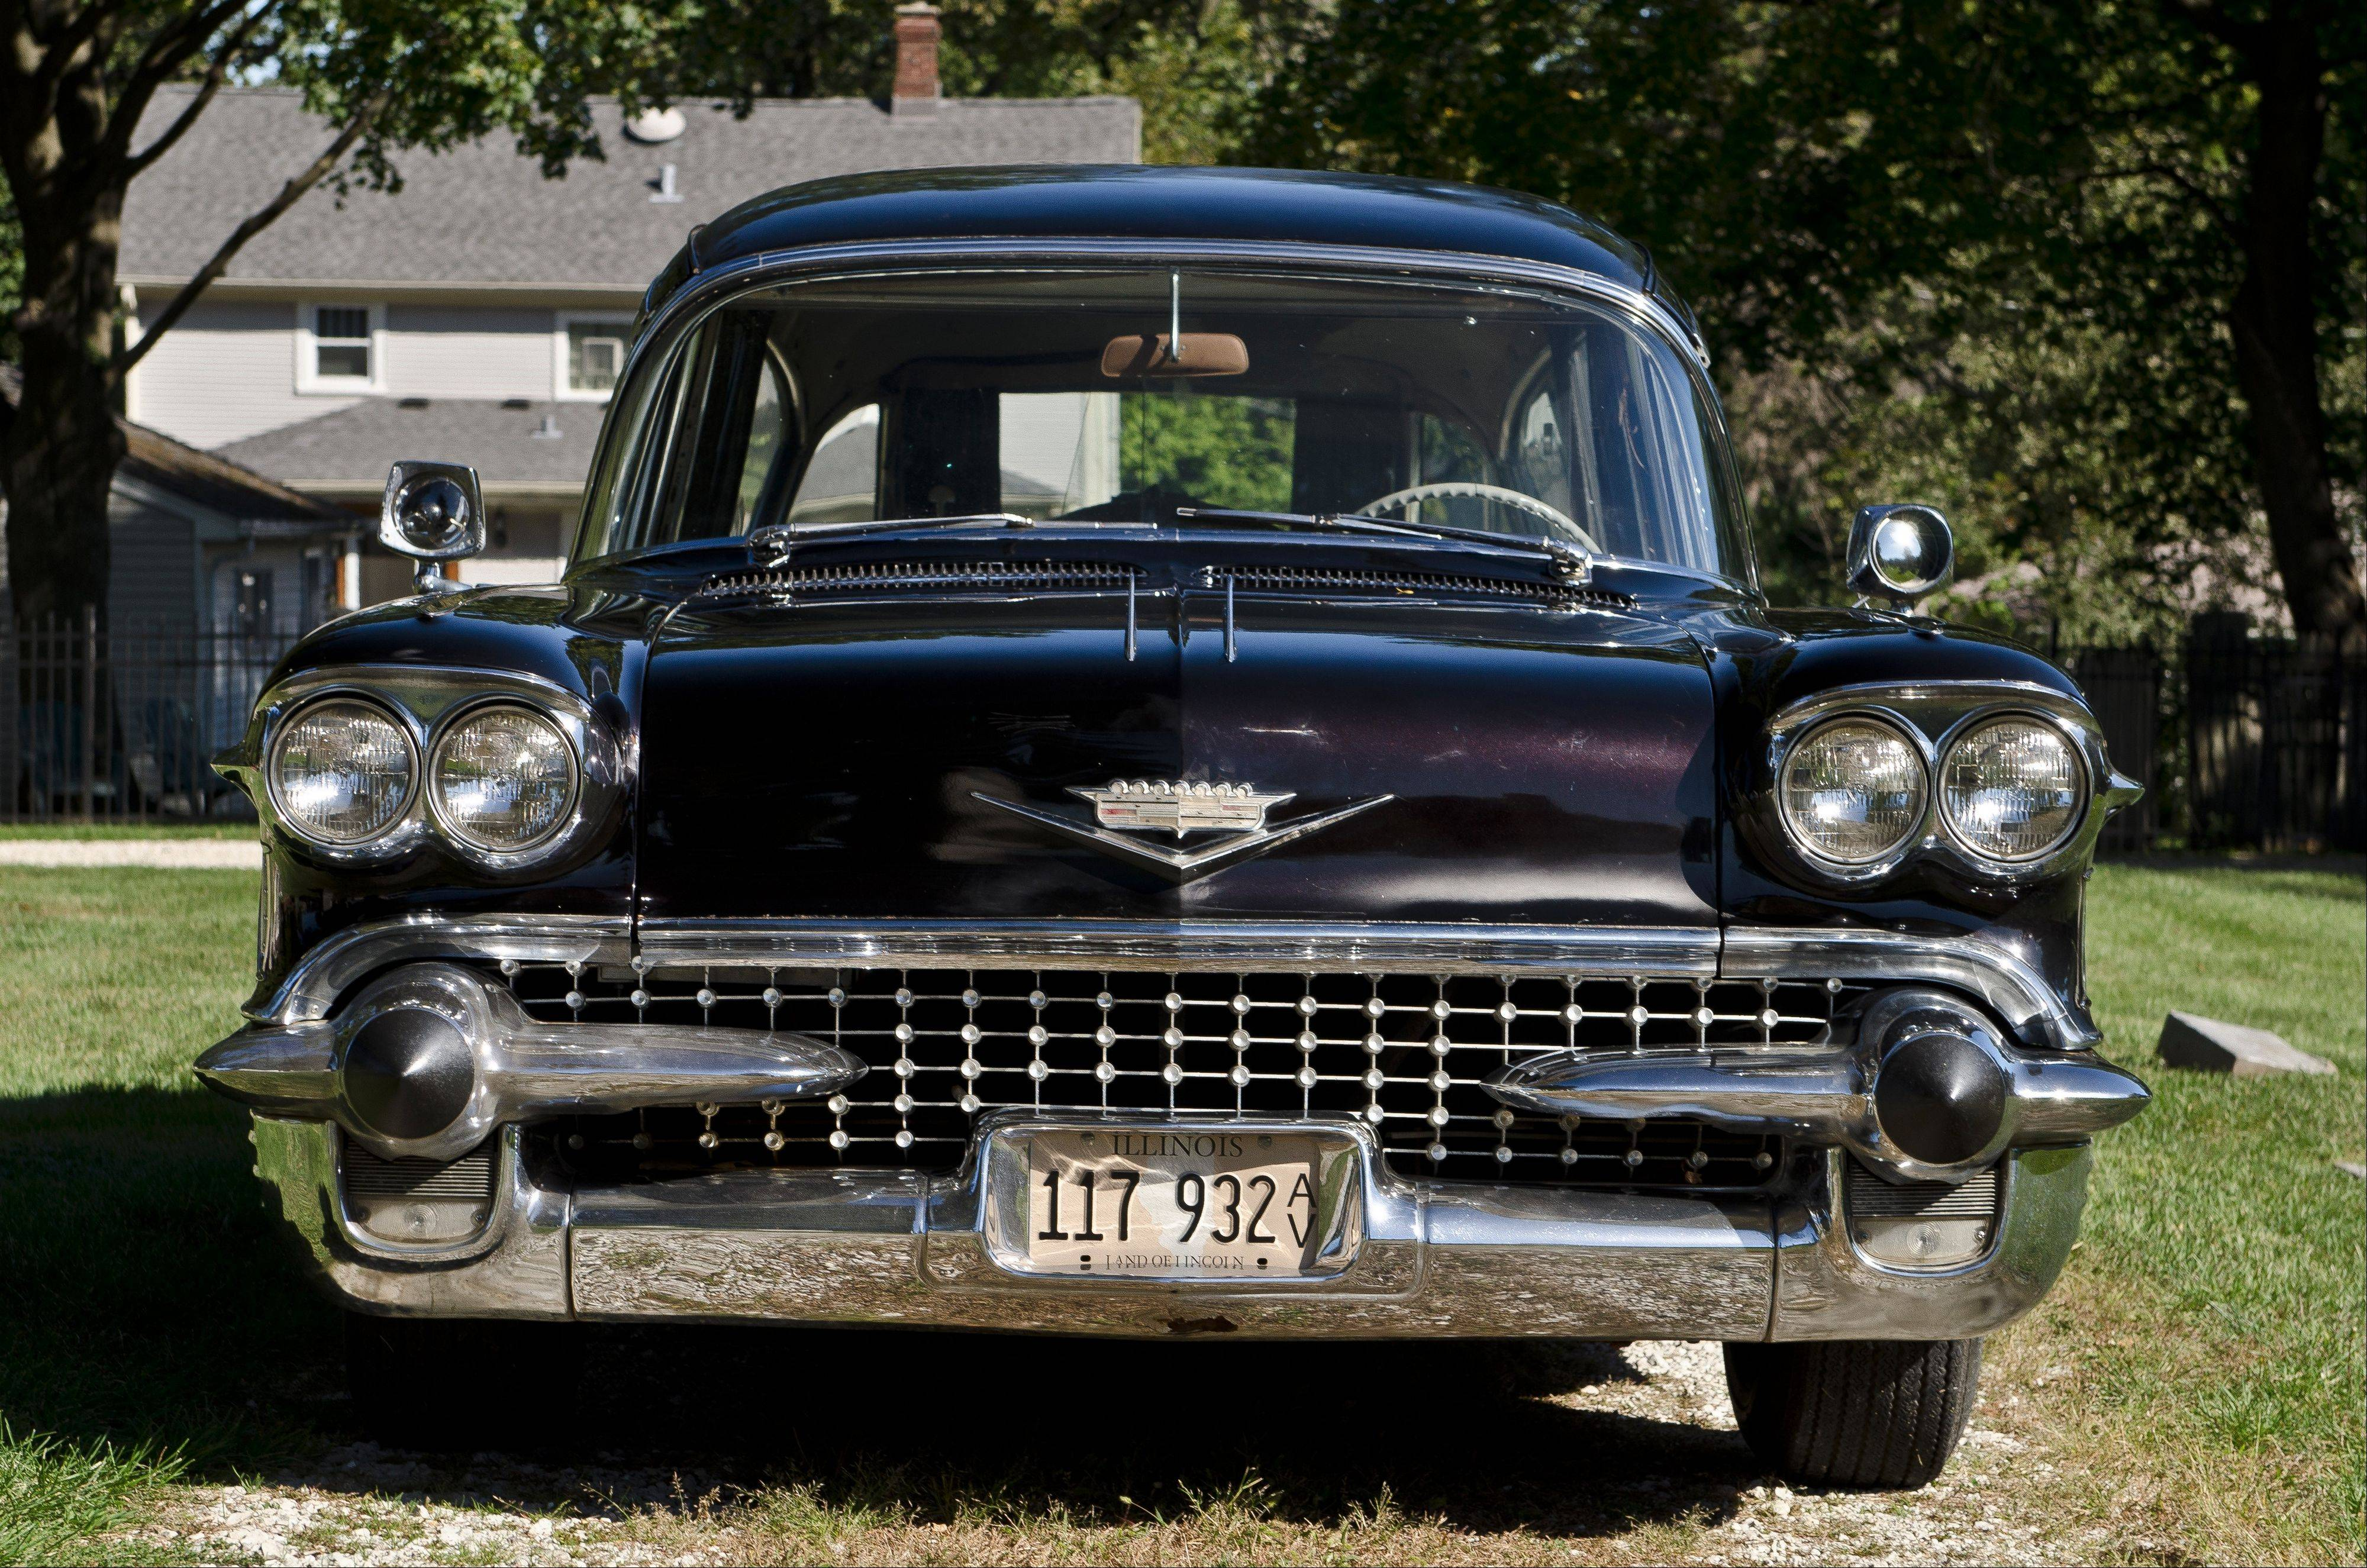 The Cadillac Series 86 commercial chassis cost $9,956 new in 1958.